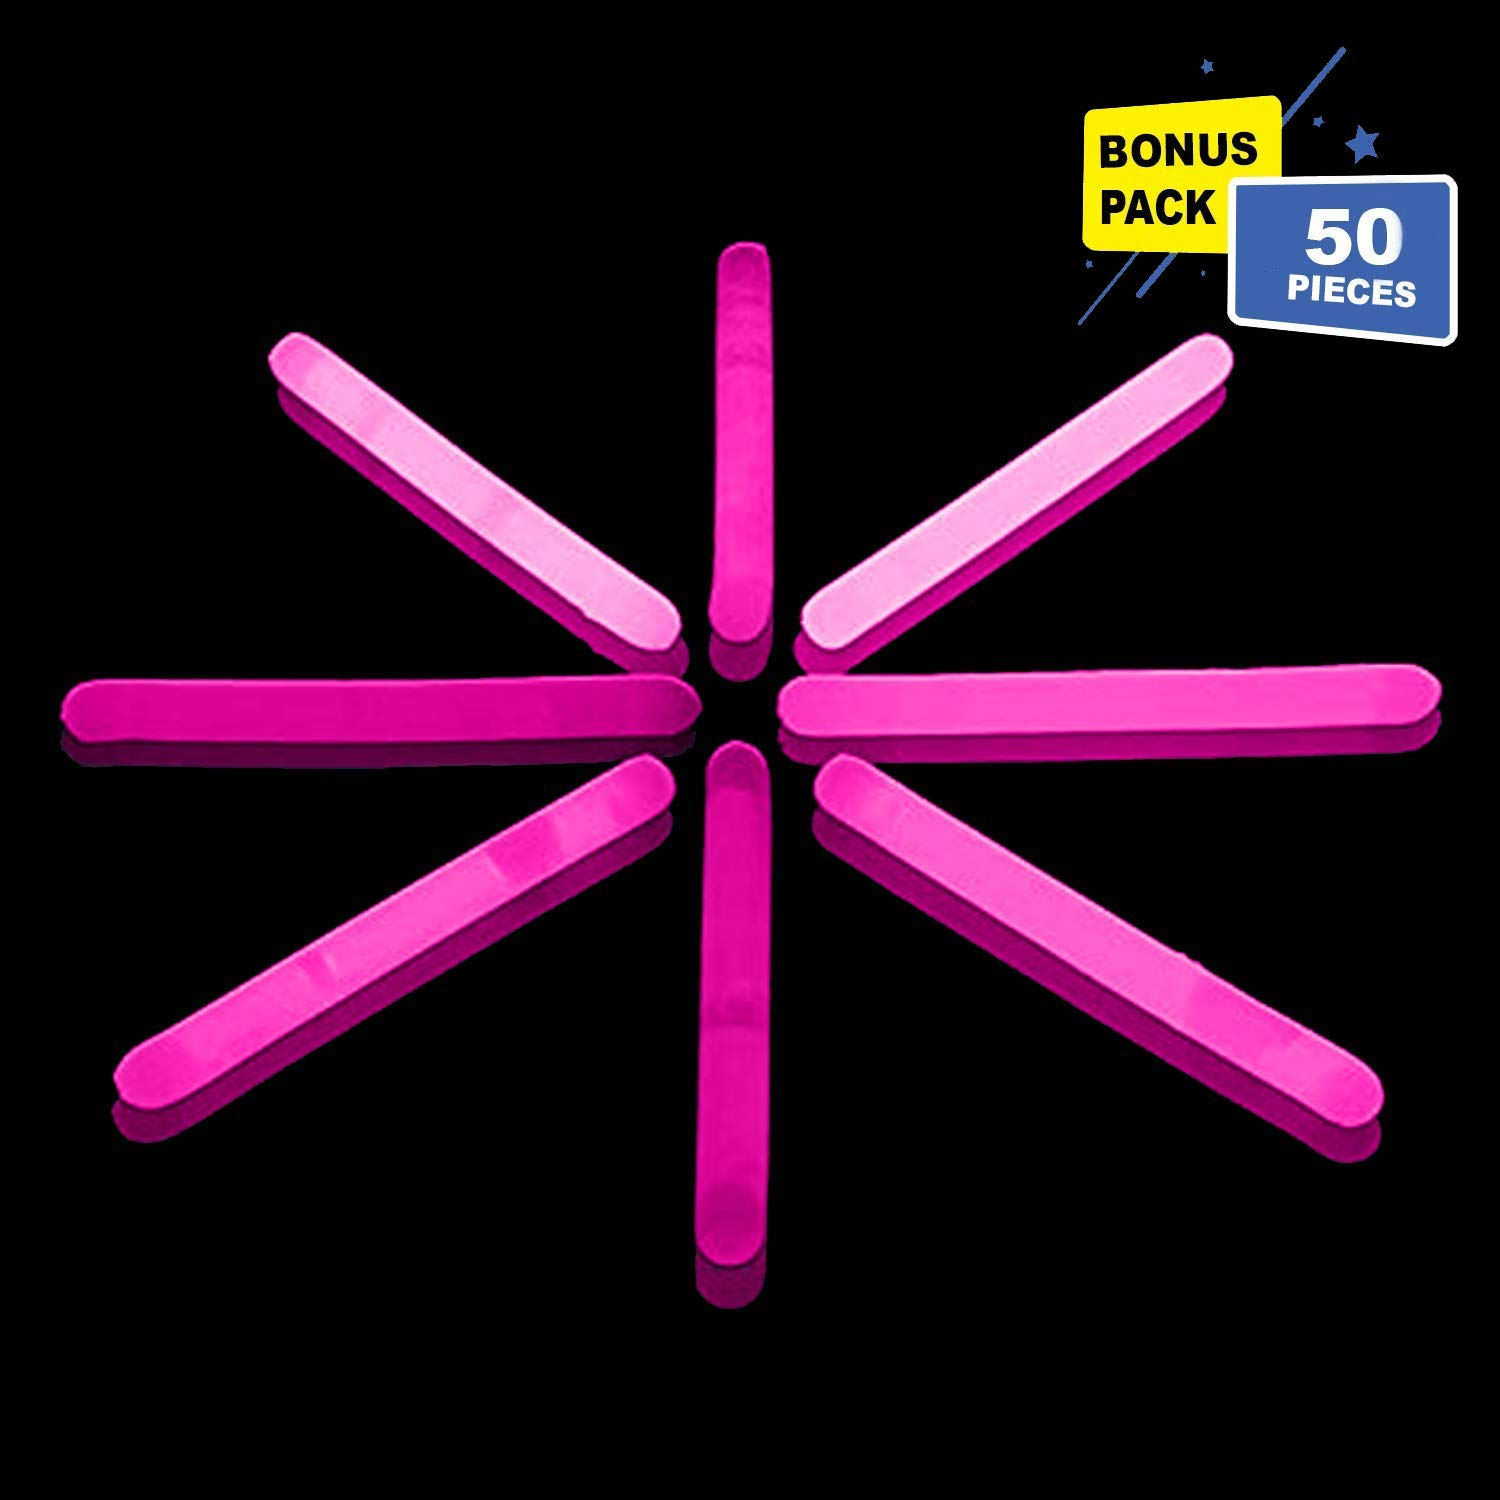 Lumistick 1.5 Inch Fishing Glow Sticks   Bright Color Snap Lights Glowsticks   Neon Mini Light for Swimming   Glow in The Dark Camping Night Party Favor Supplies (Pink, 50 Glow Sticks)